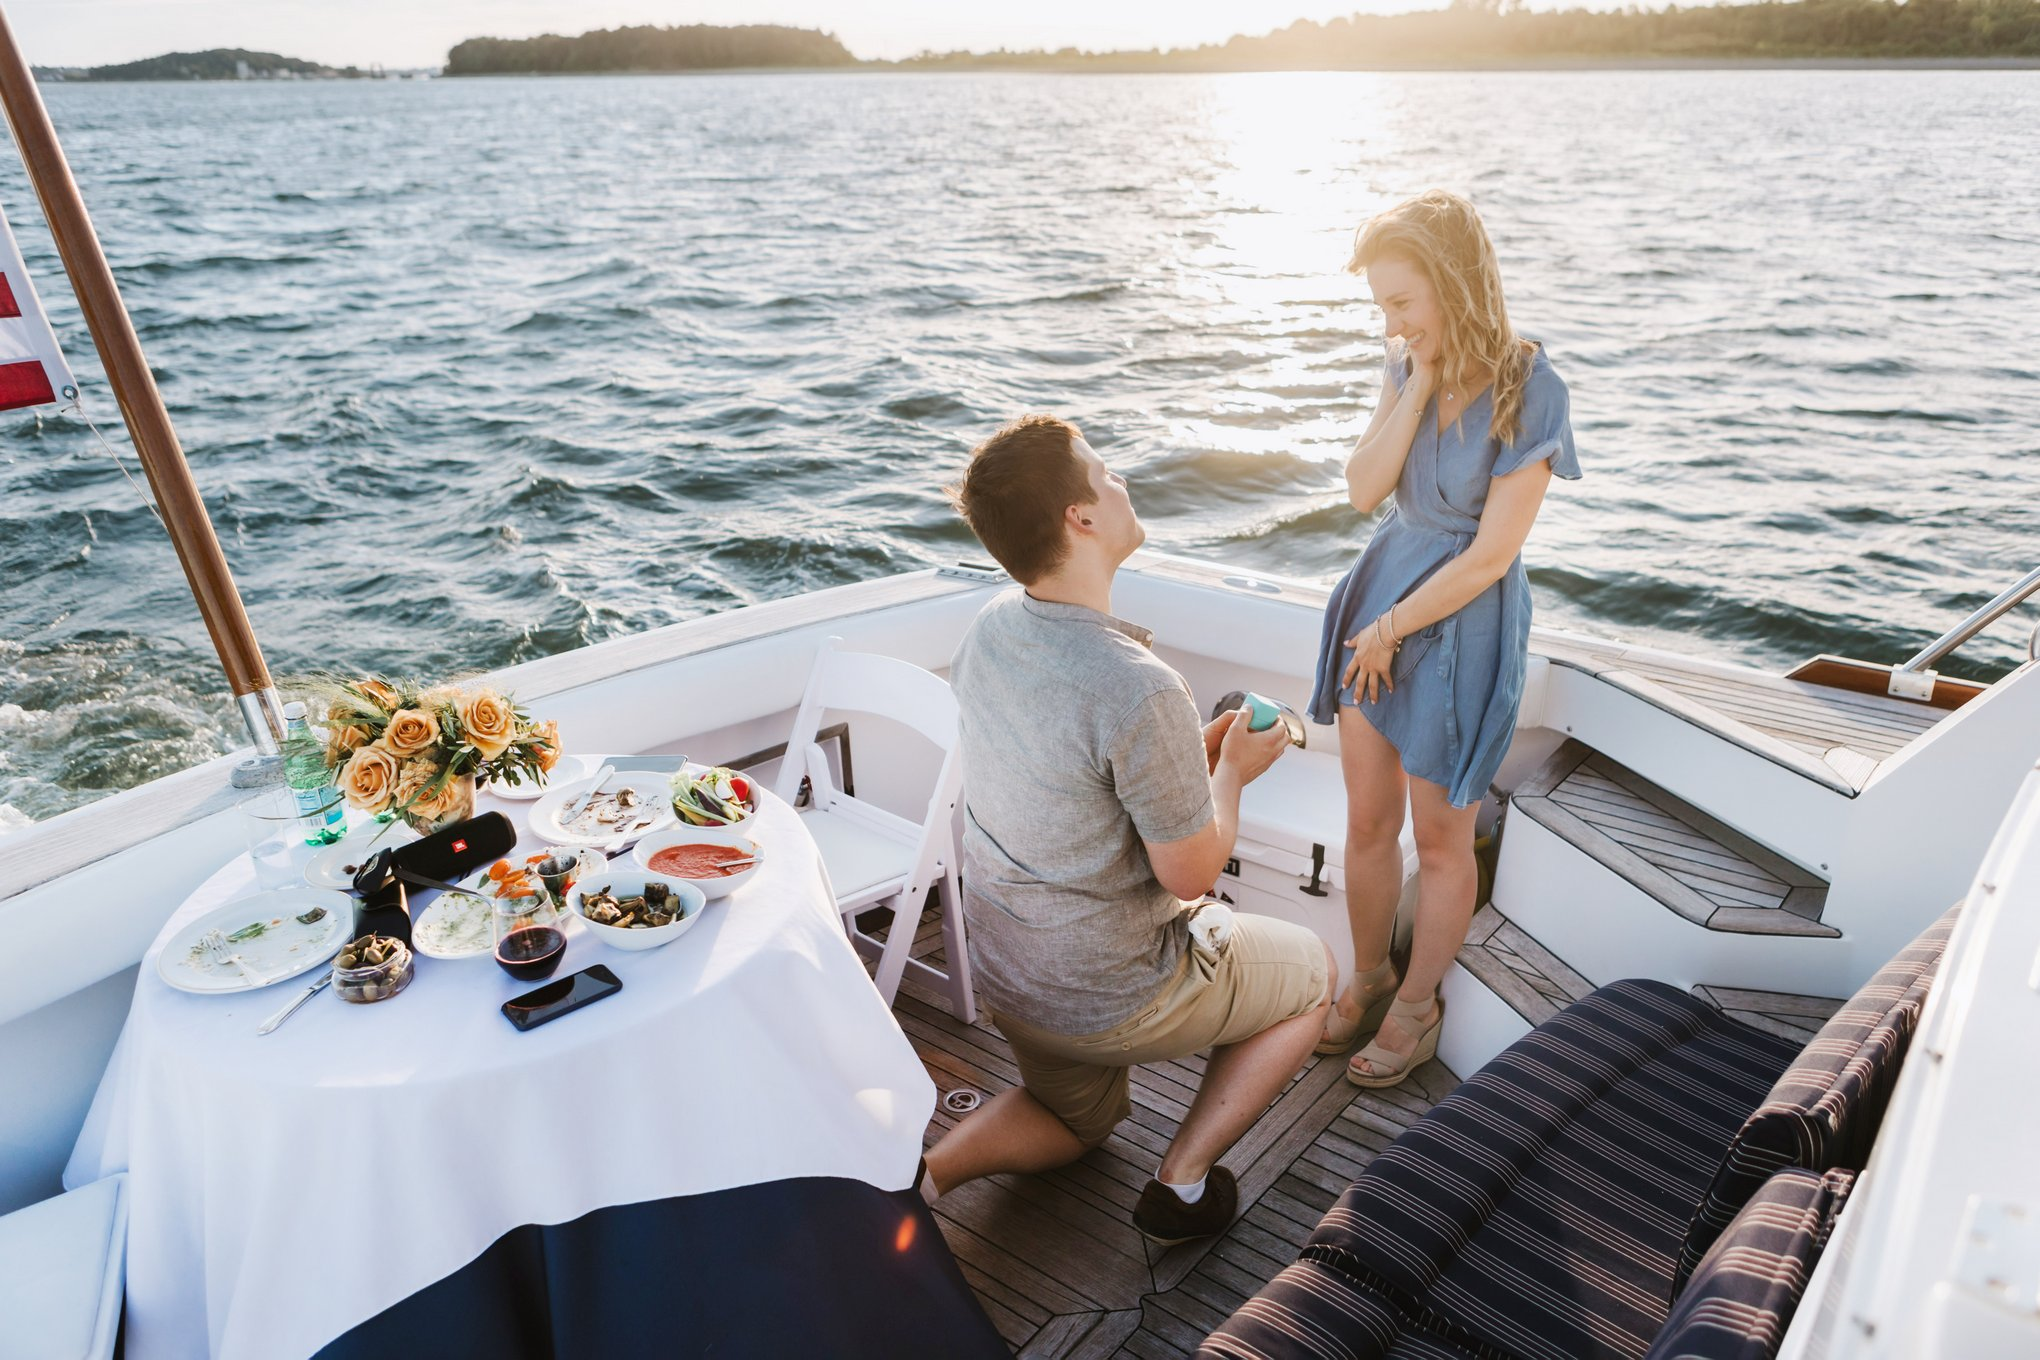 Yacht-Proposal-Boat-Boston-Harbor-Engagement-Beach-Lena-Mirisola-6.JPG